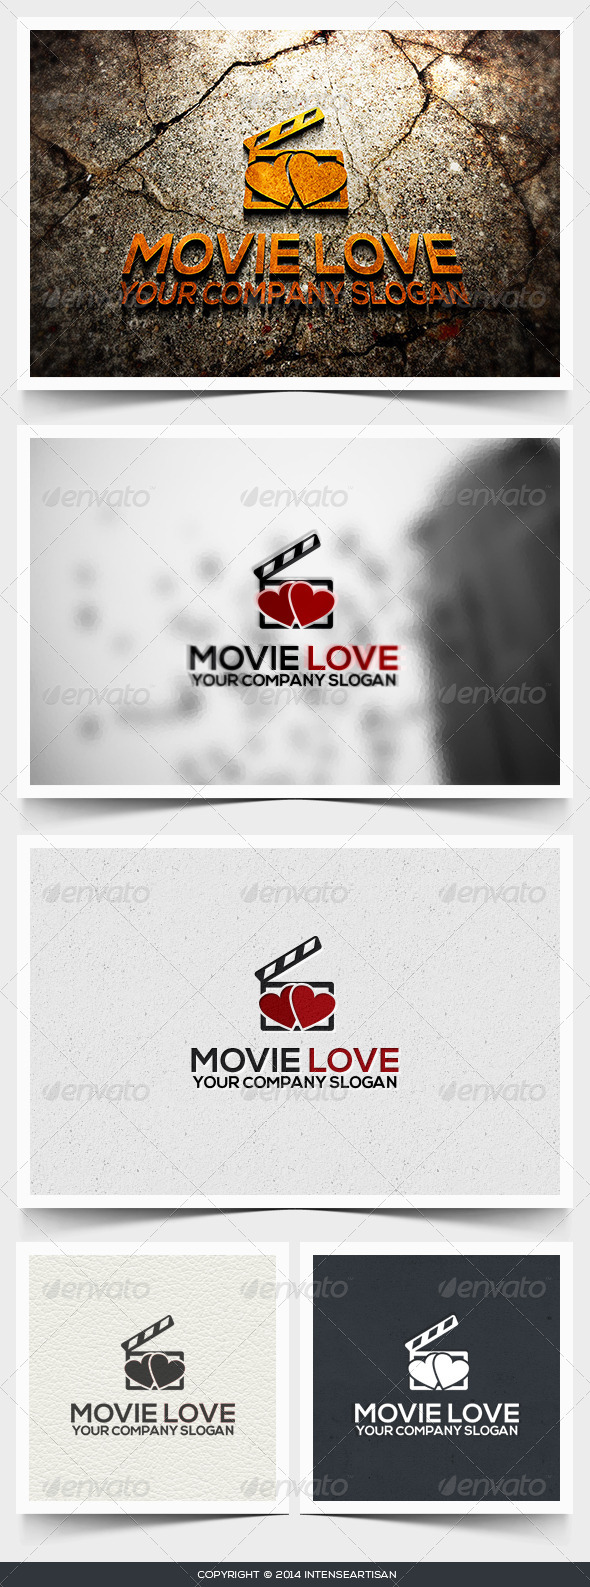 Movie Love Logo Template